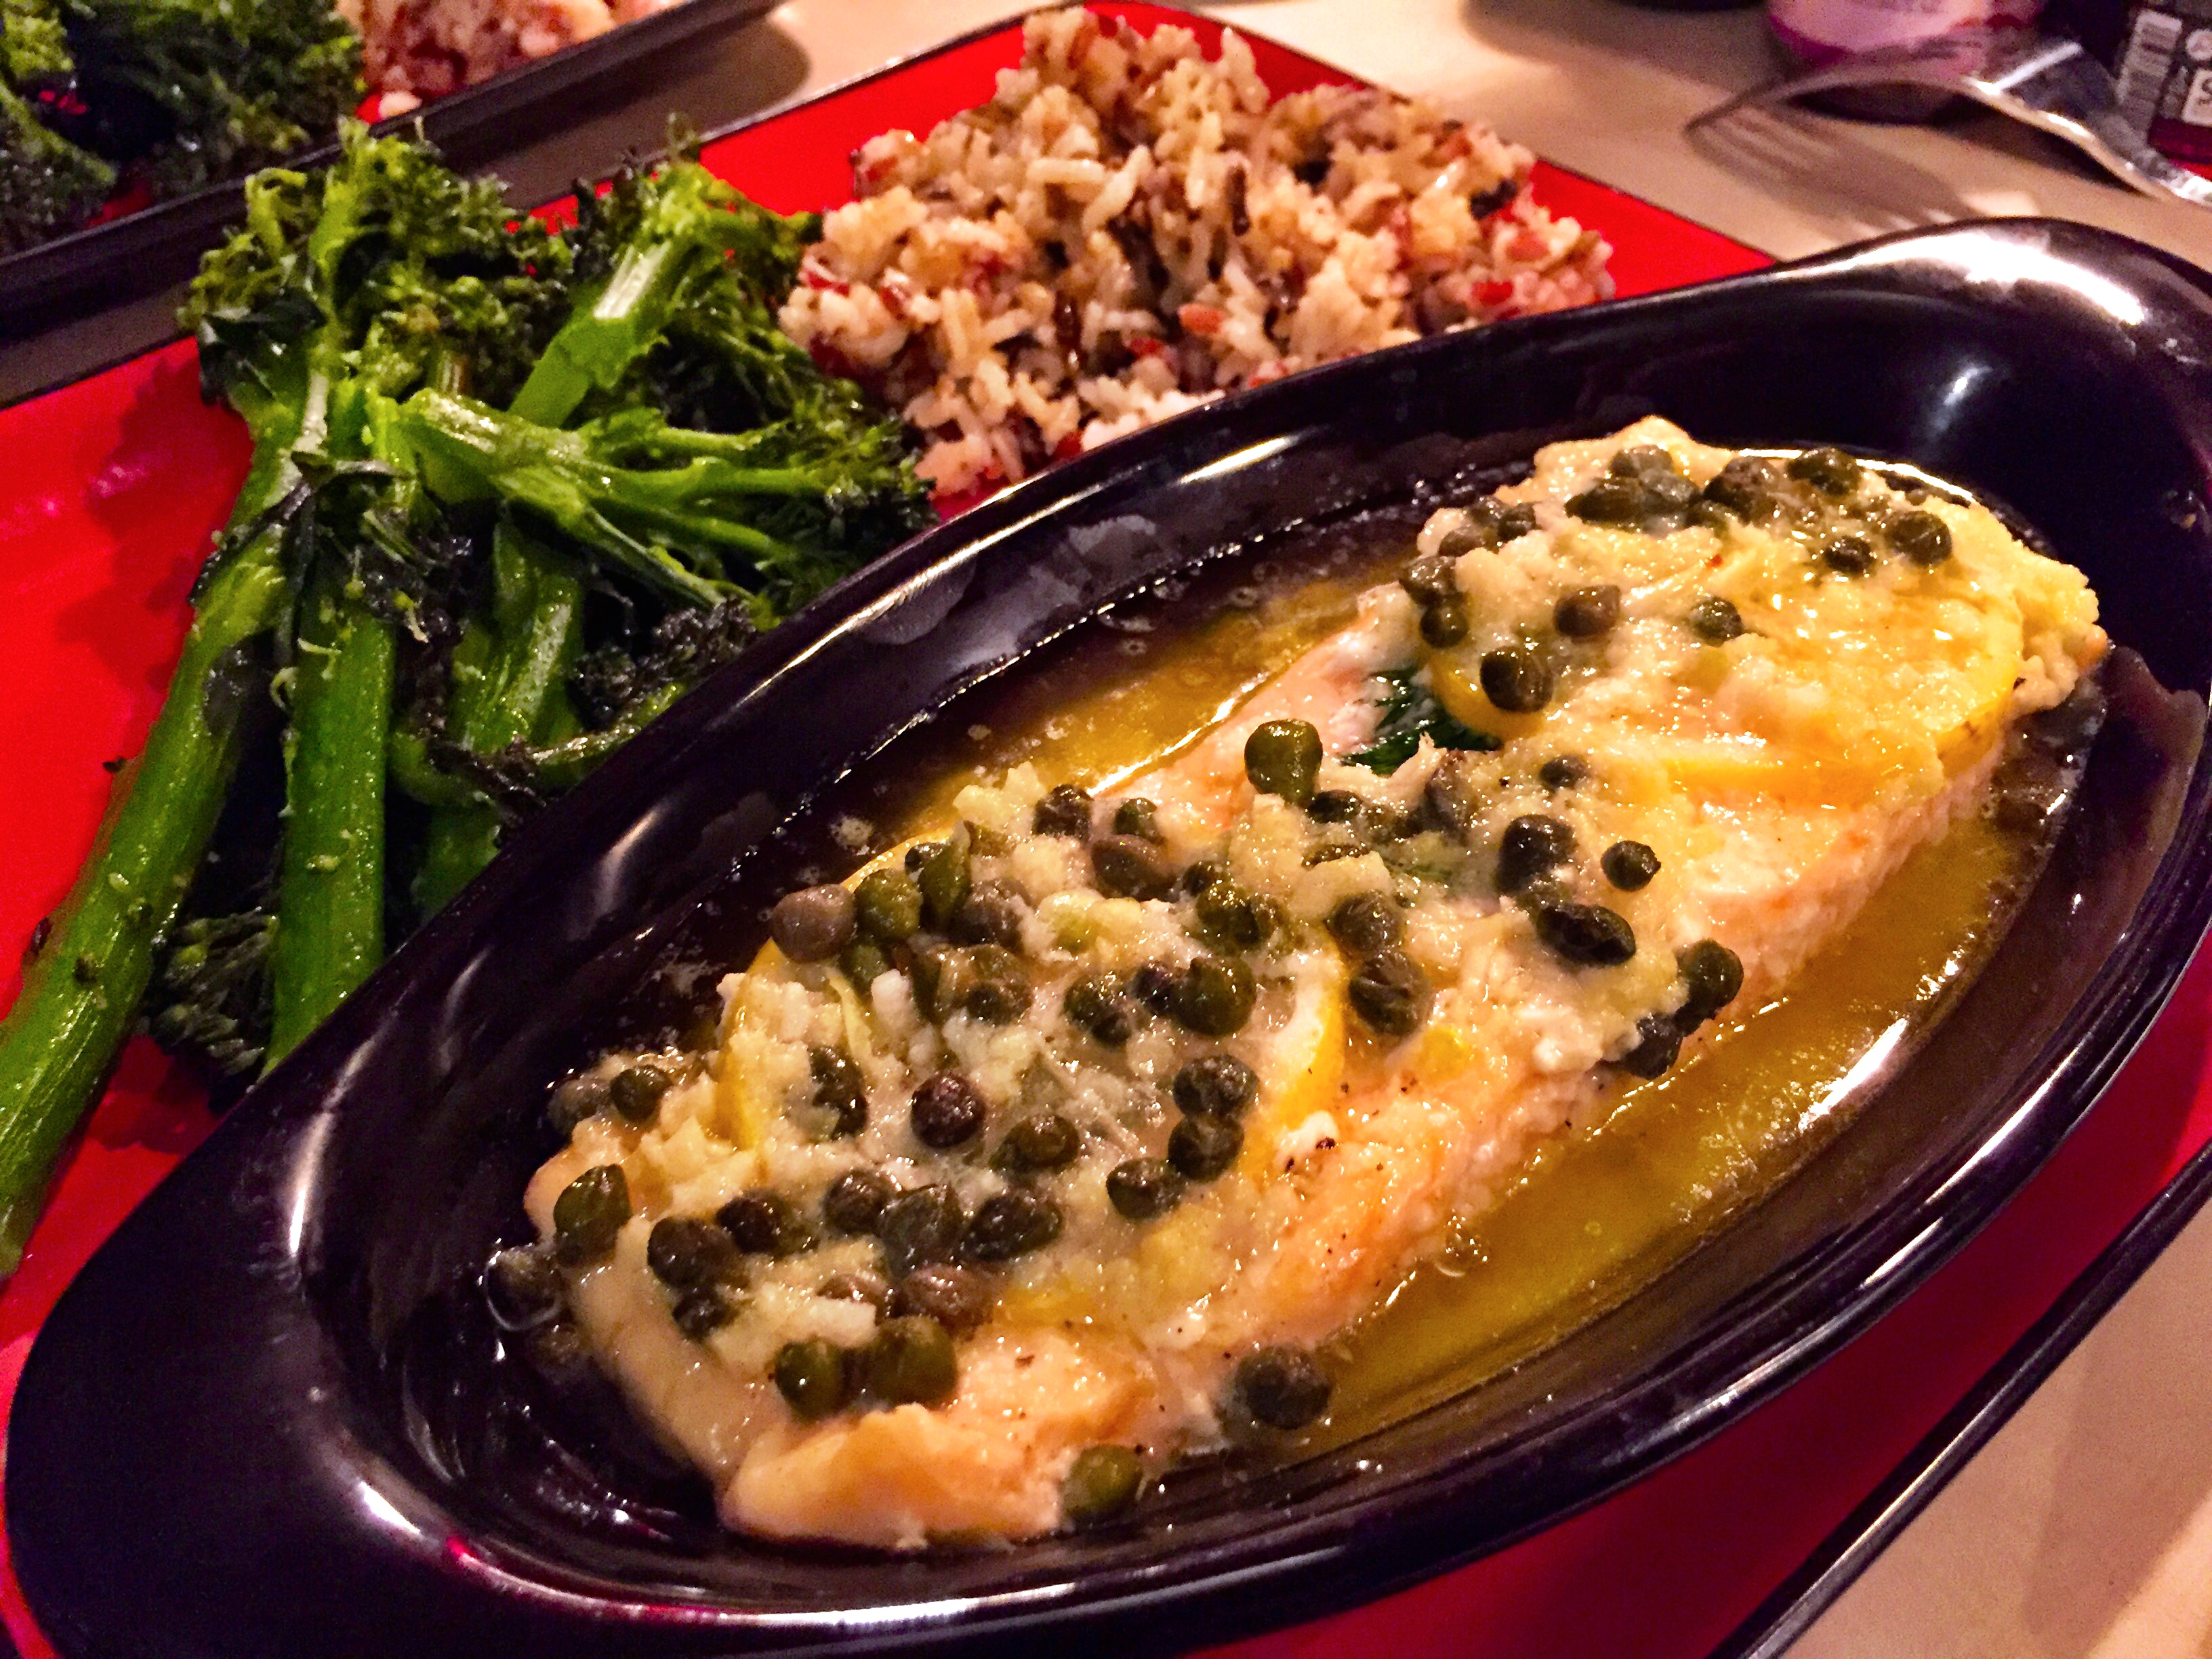 Dave's Baked Salmon with Garlic-Butter Sauce